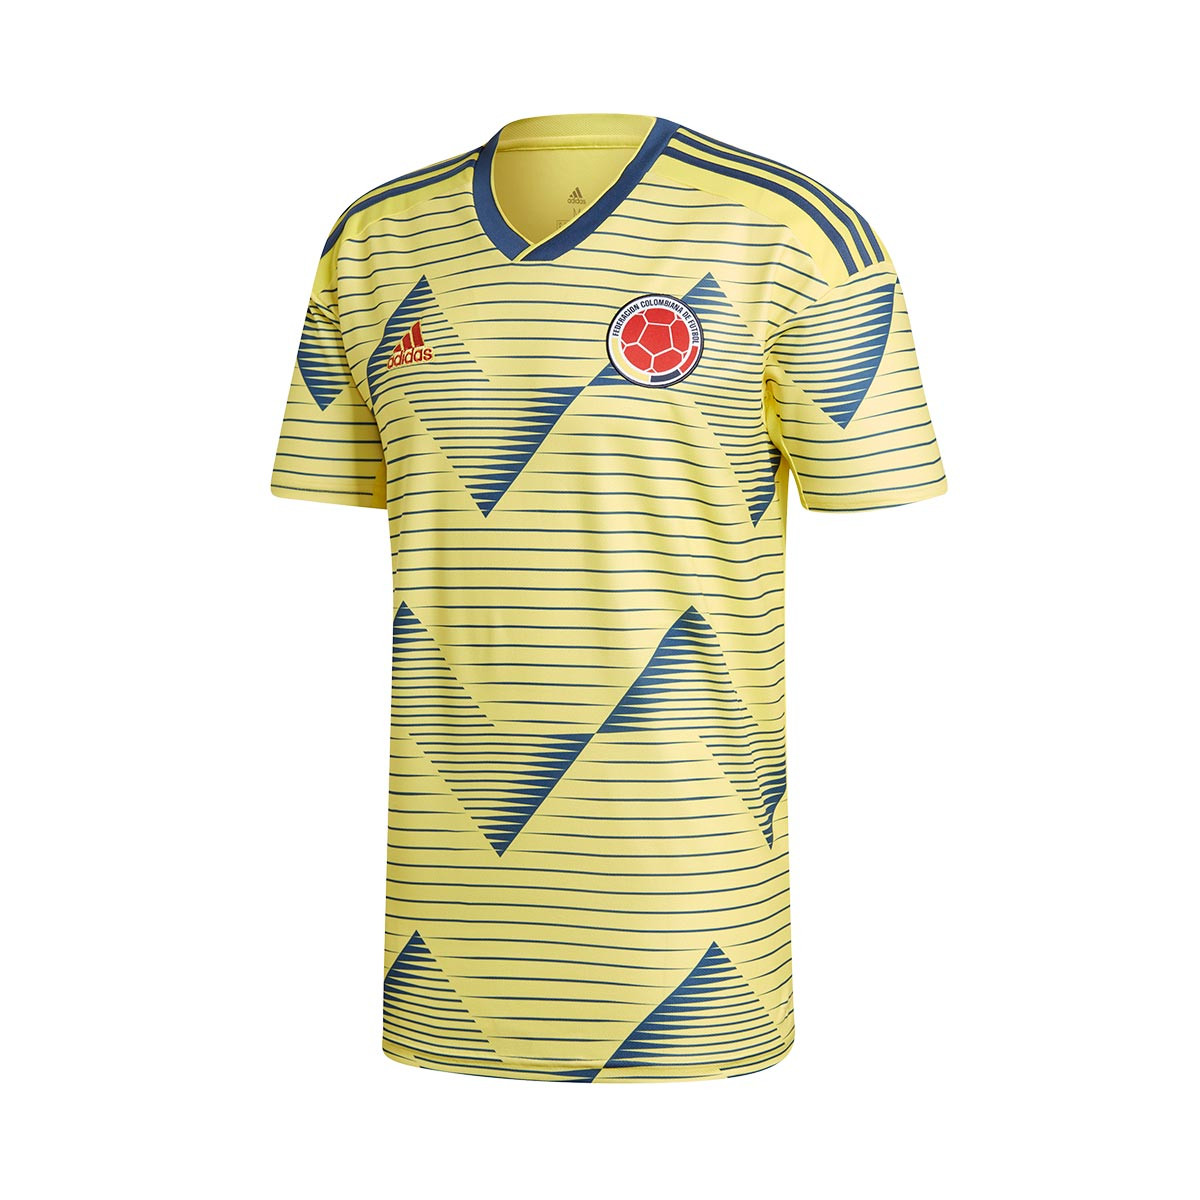 849ac32b68d Jersey adidas Colombia 2019 Home Light yellow-Night marine ...